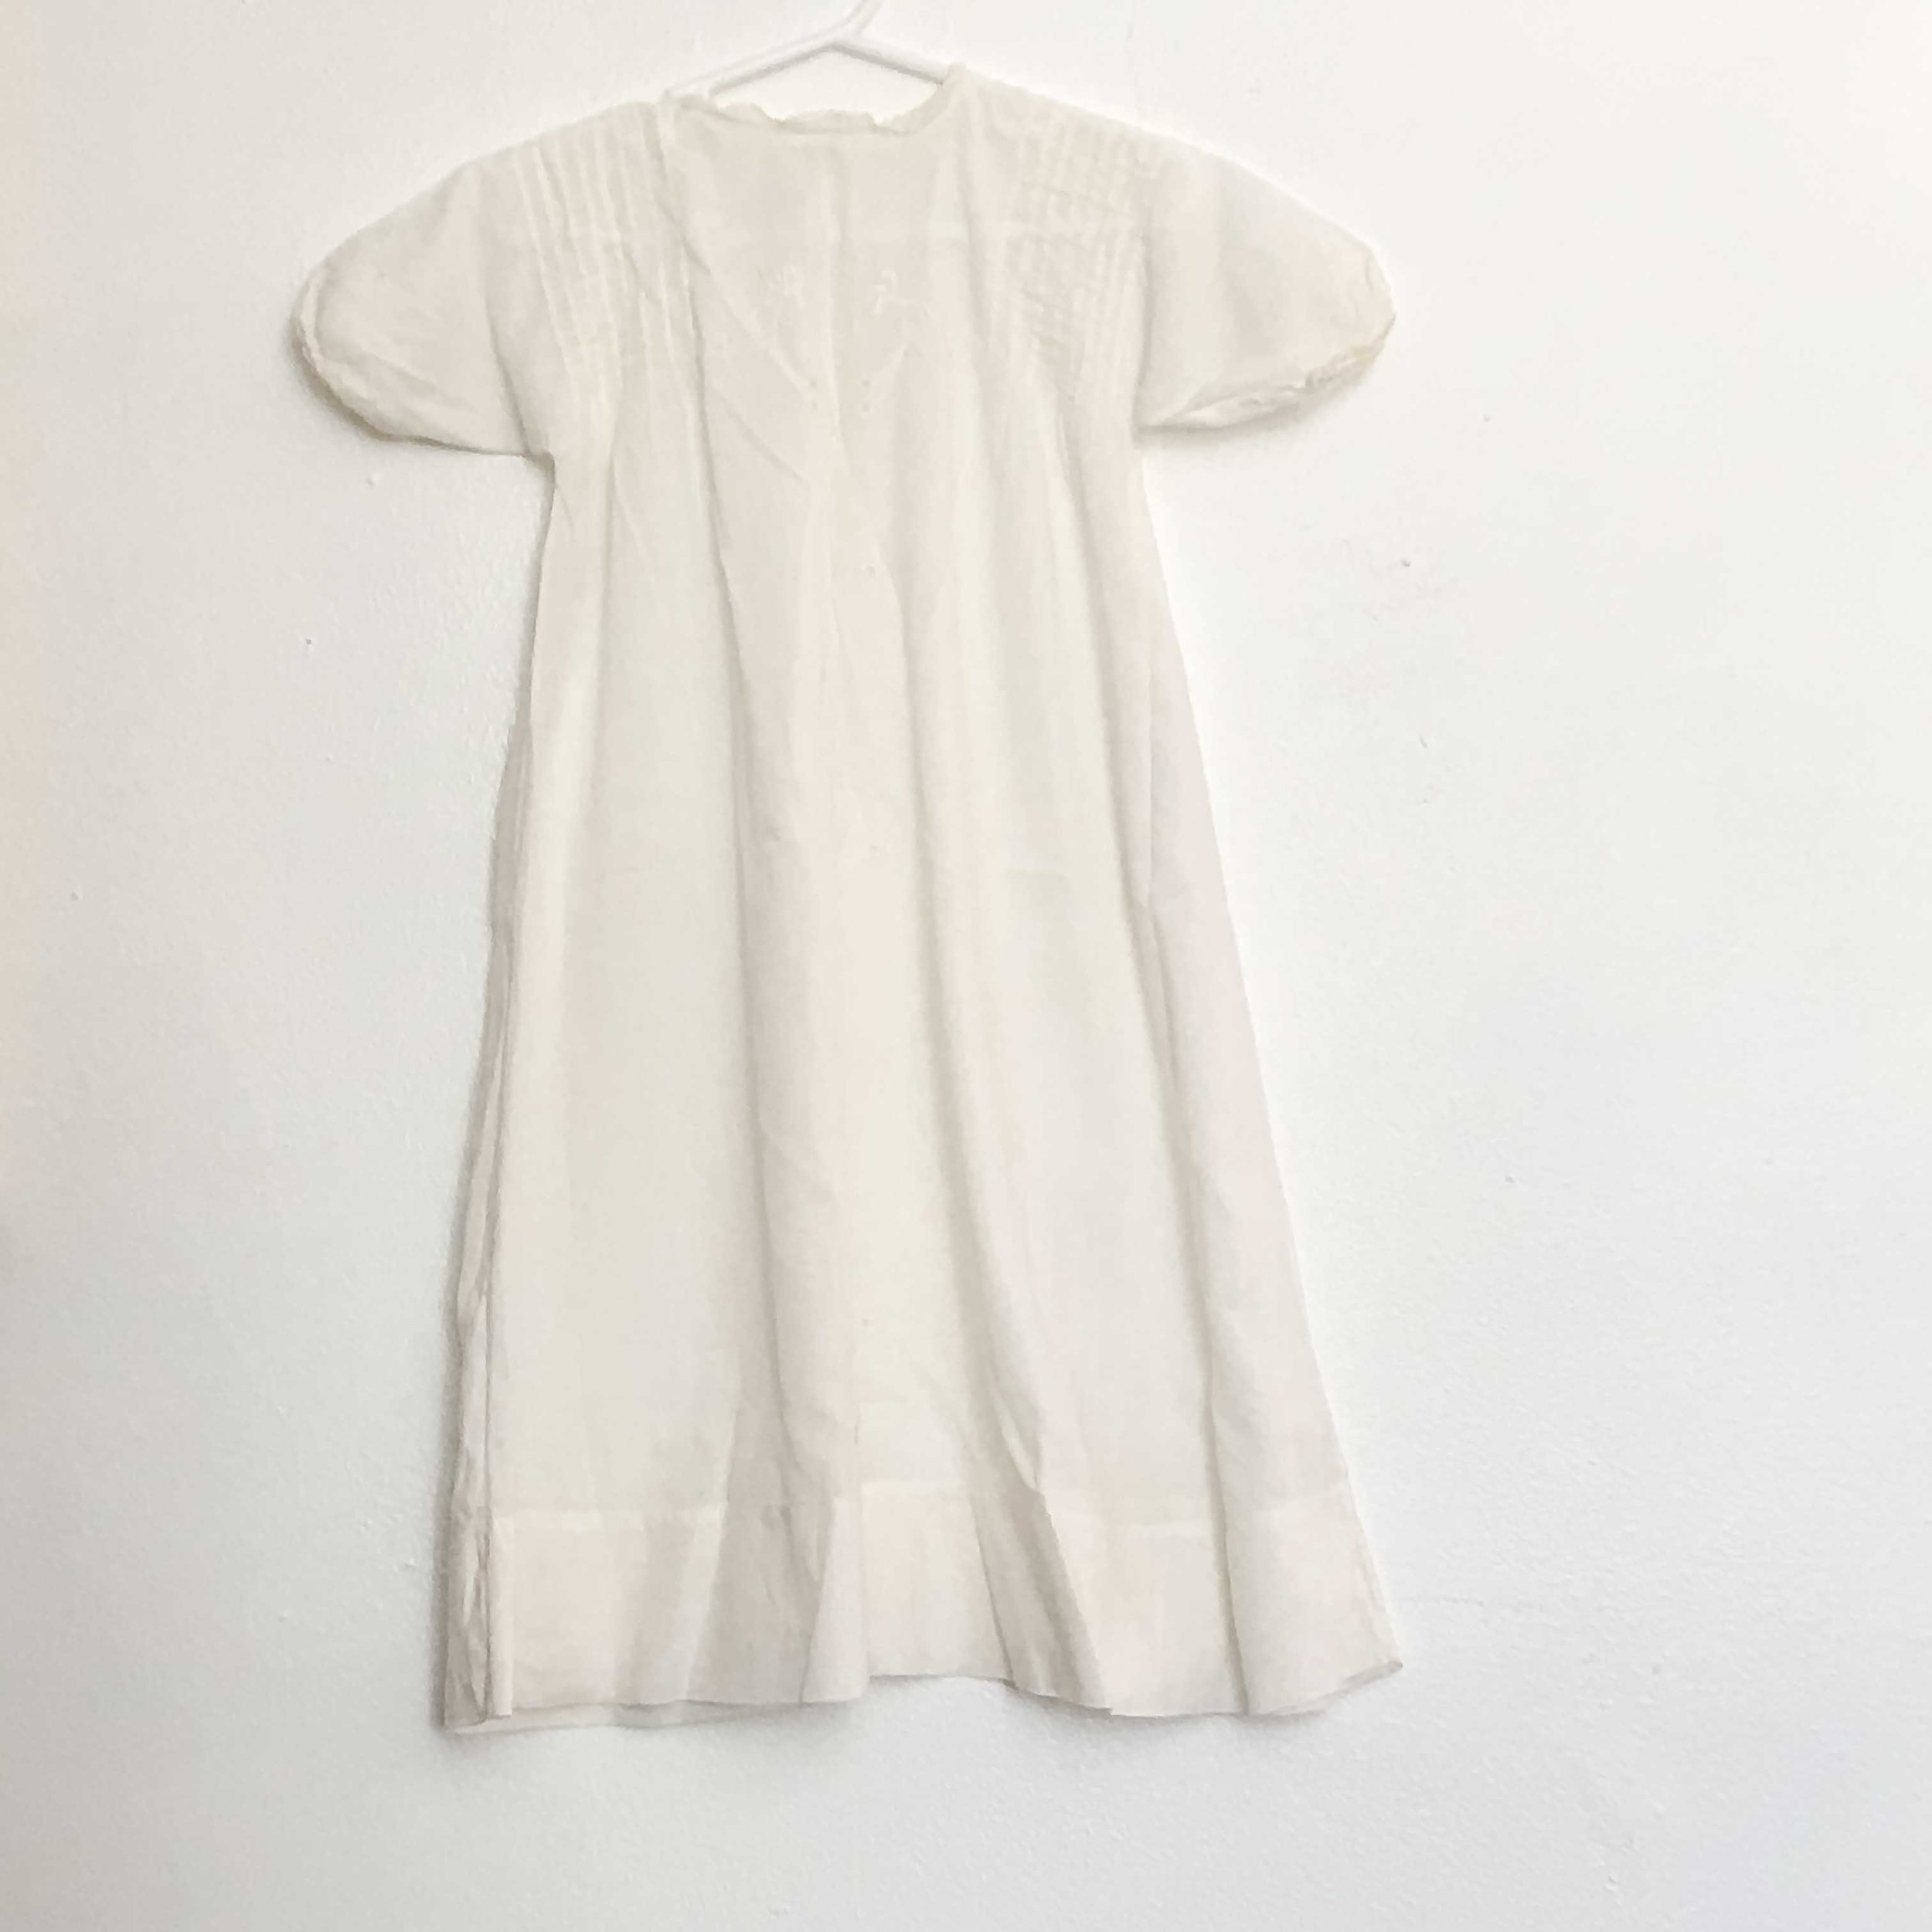 ORPCLOTHES-1.jpg